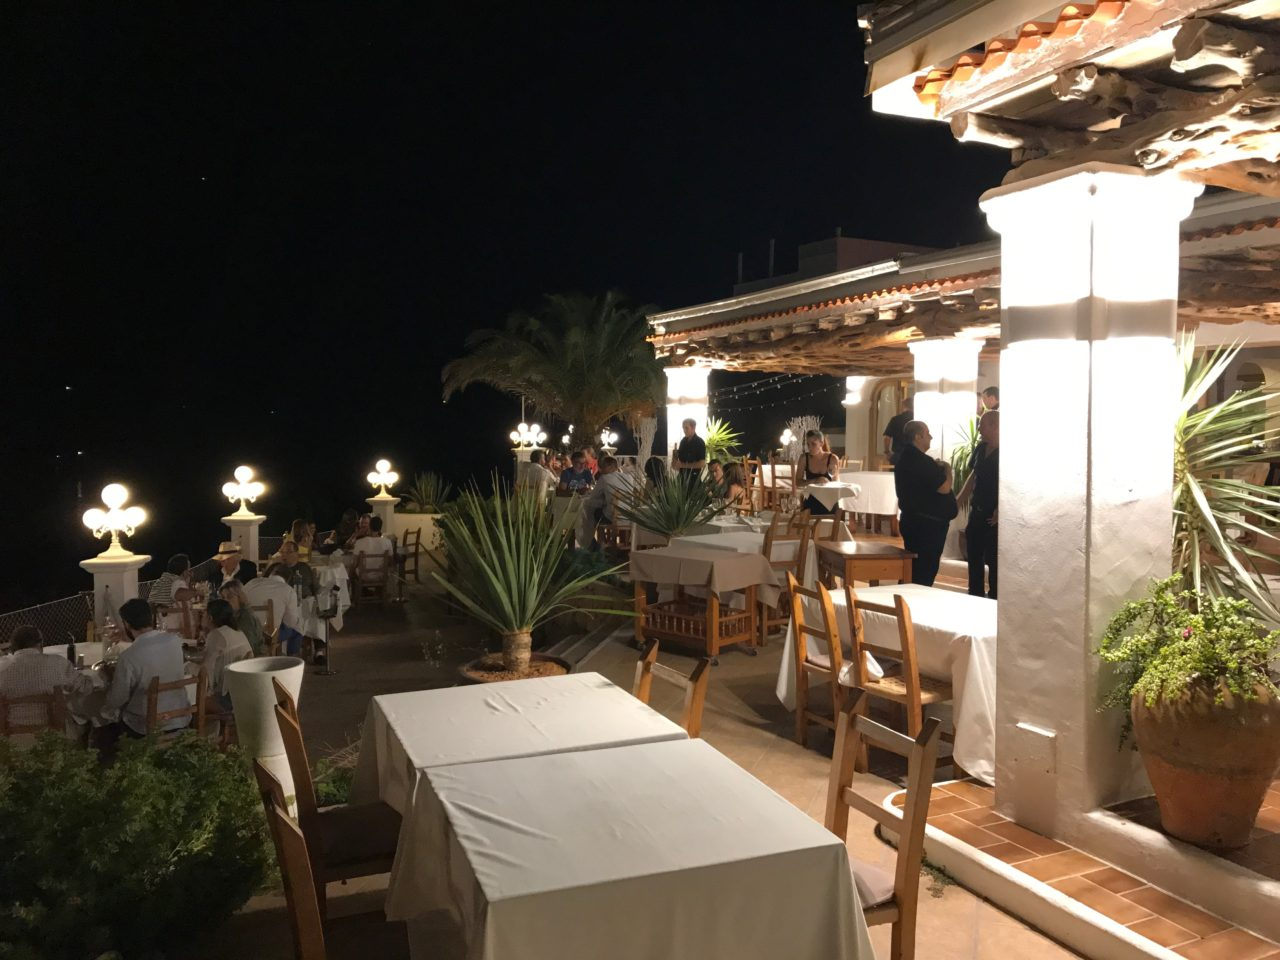 Luxurious Clifftop Restaurant With Tables And People